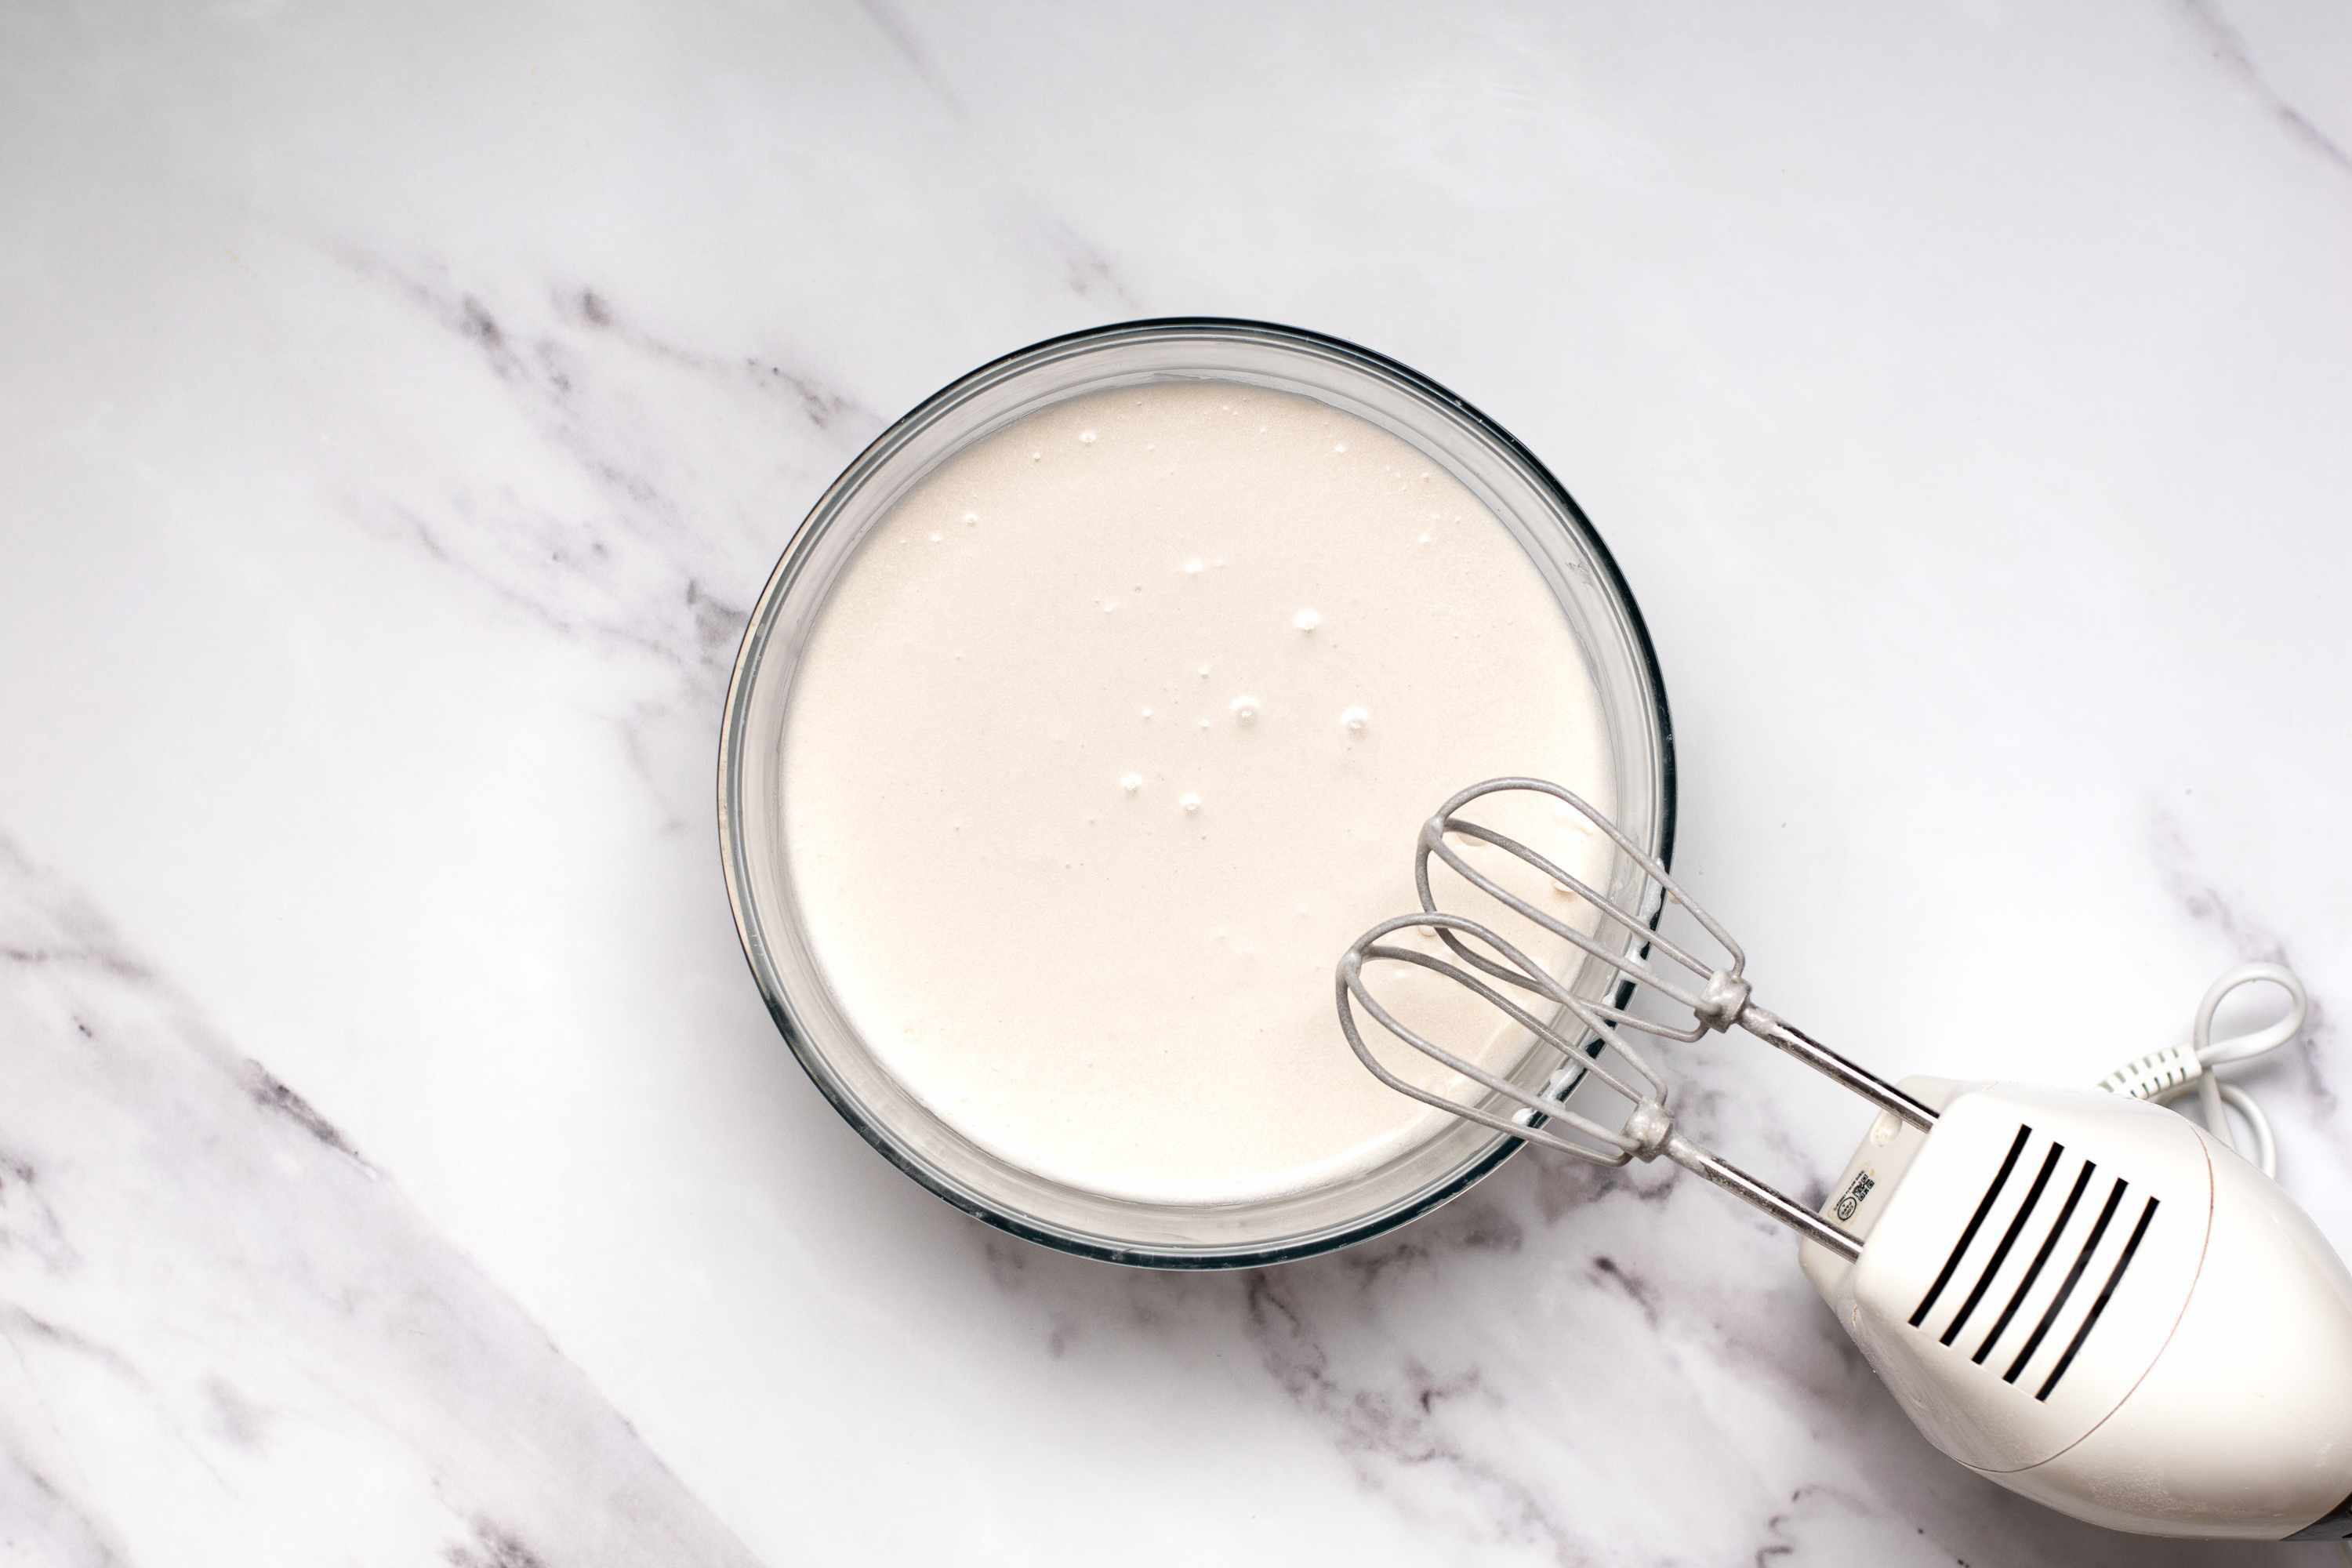 coconut milk mixture with flour and baking powder in a bowl, hand mixer